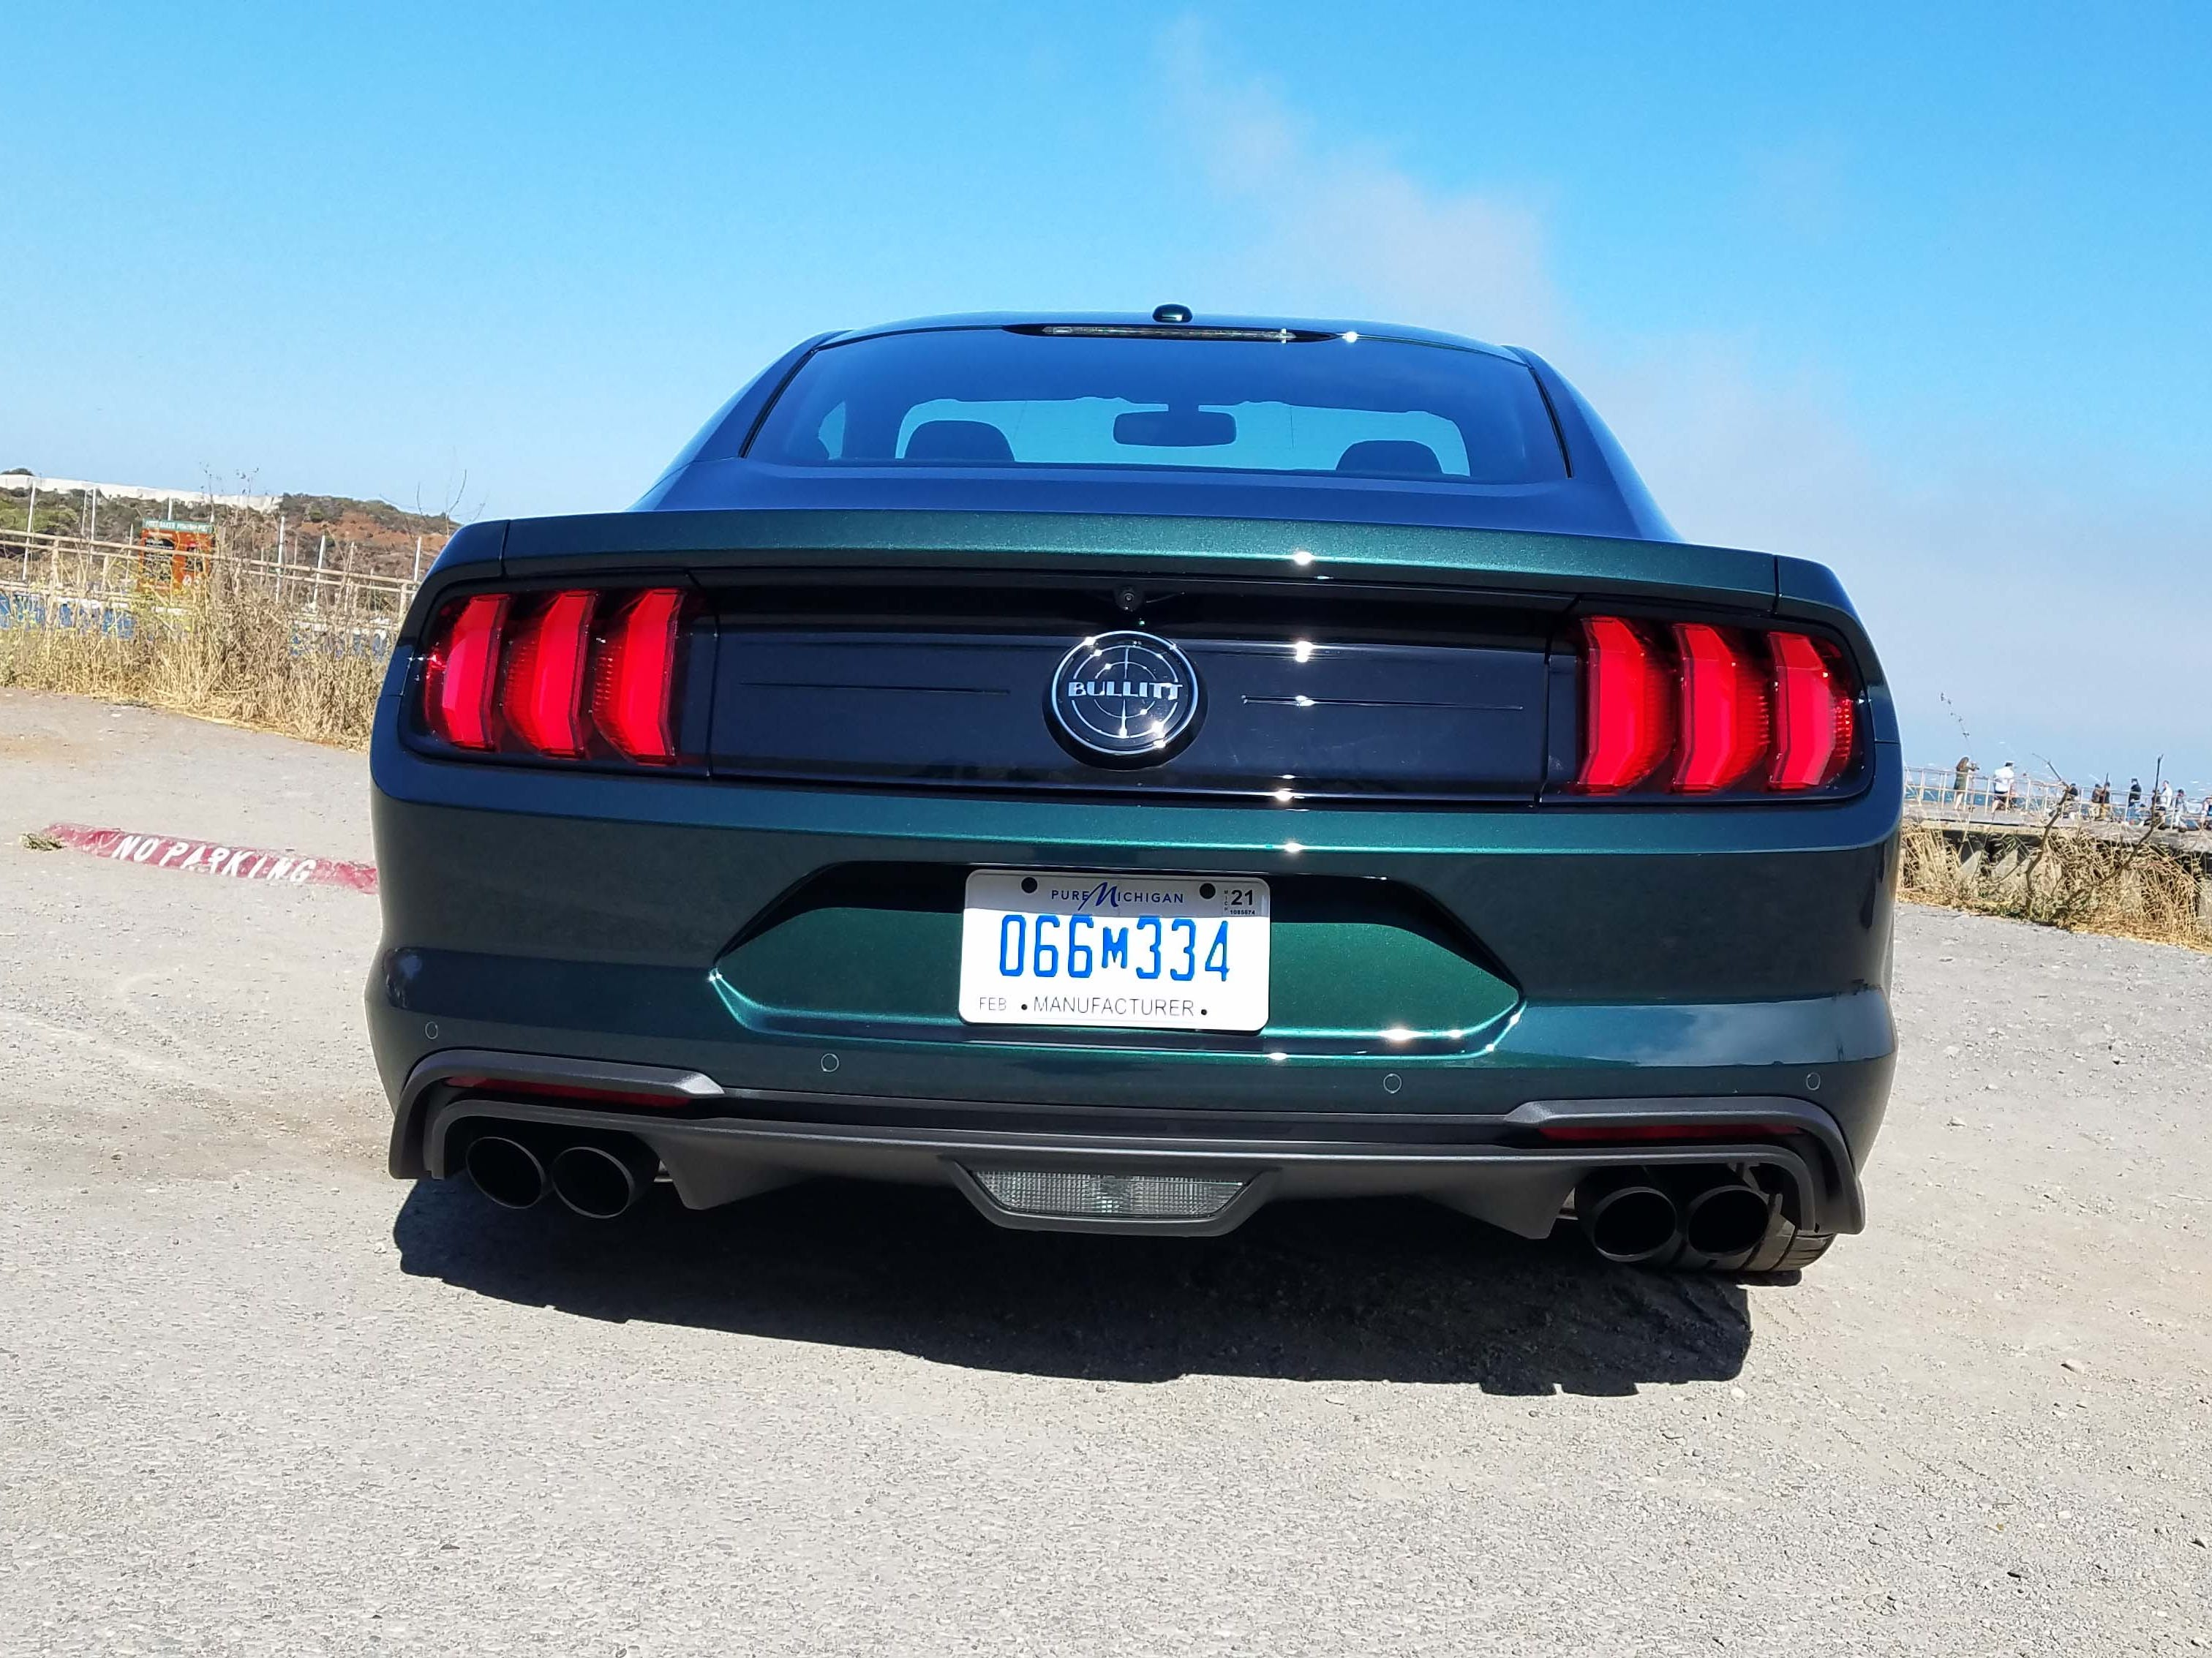 The business end of a 2019 Ford Mustang Bullitt. The Bullitt adds to the mystique of the best-selling muscle car in America.